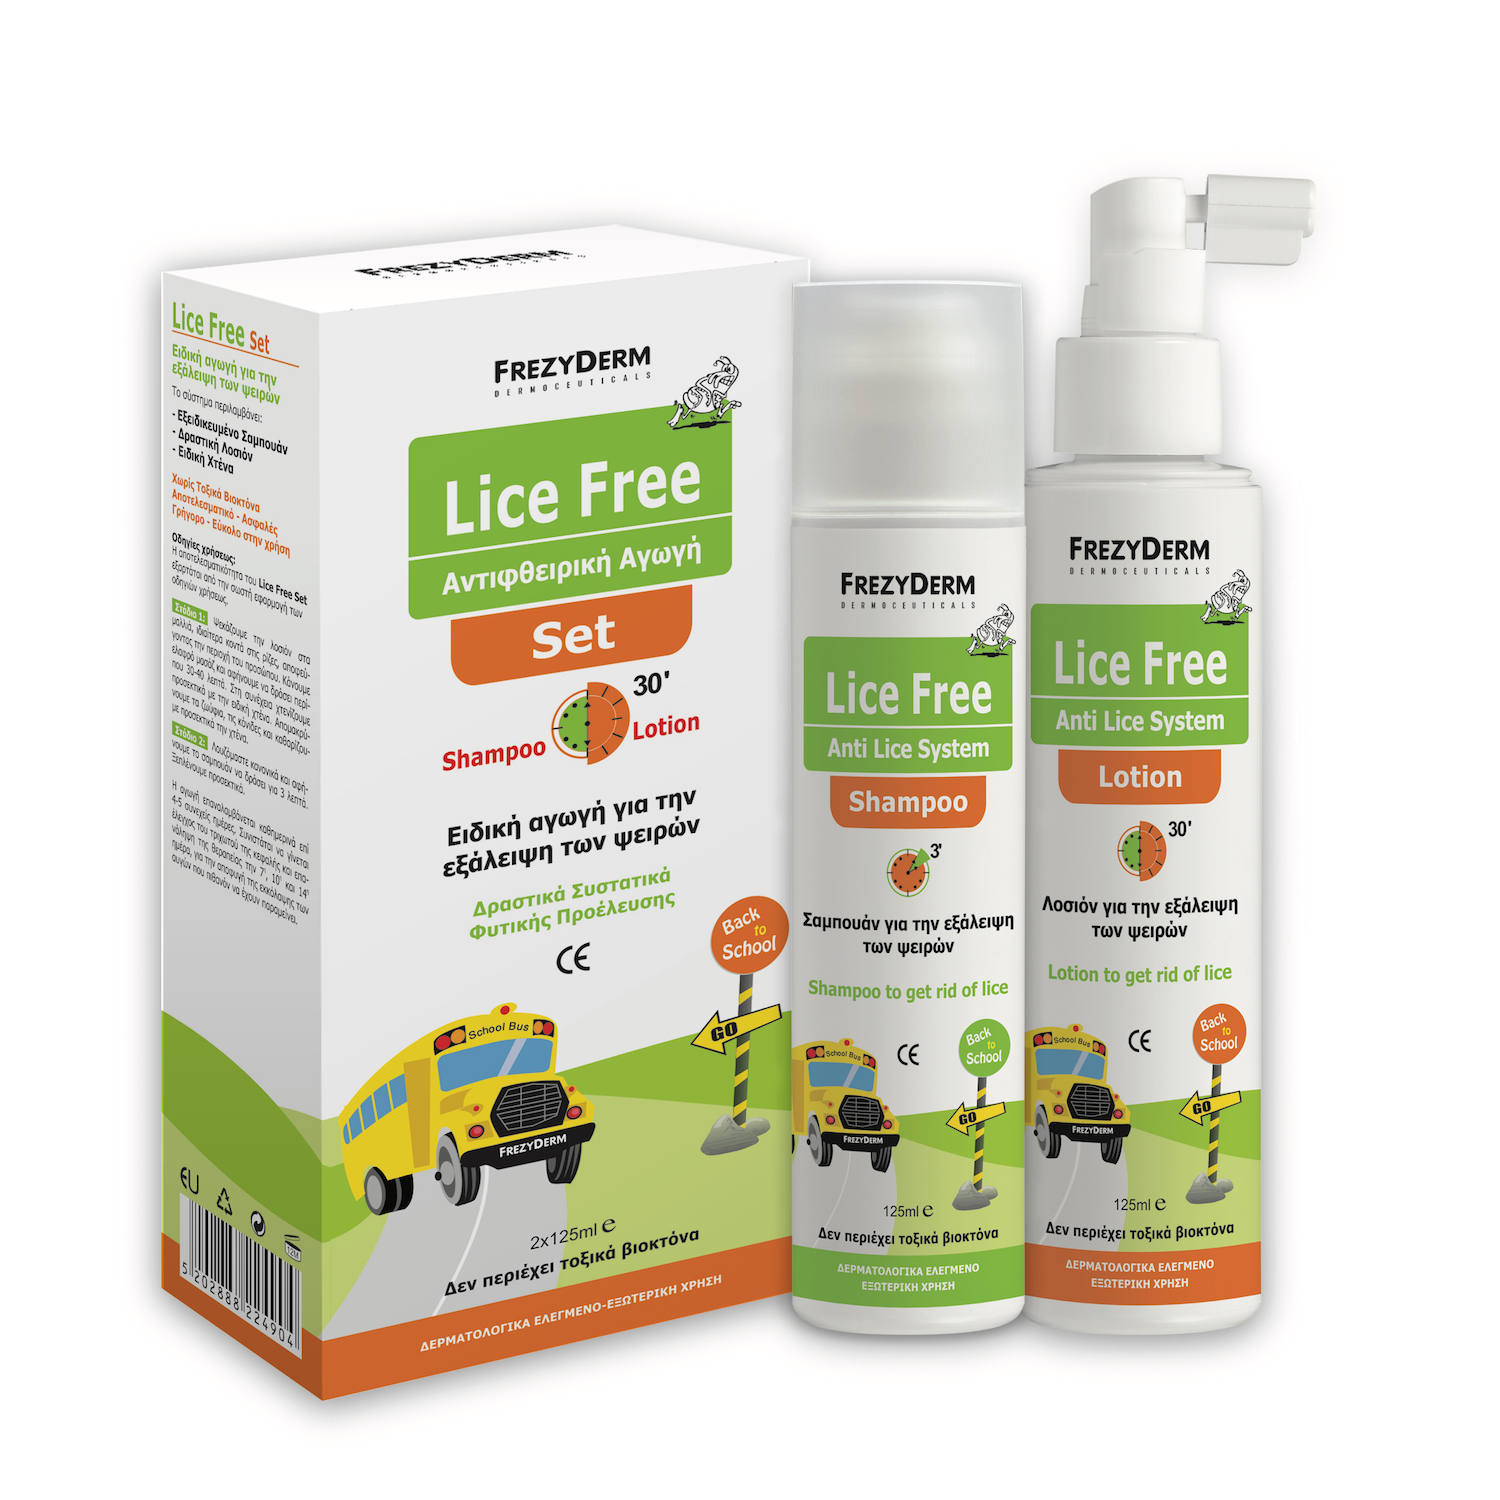 frezyderm_lice free set new